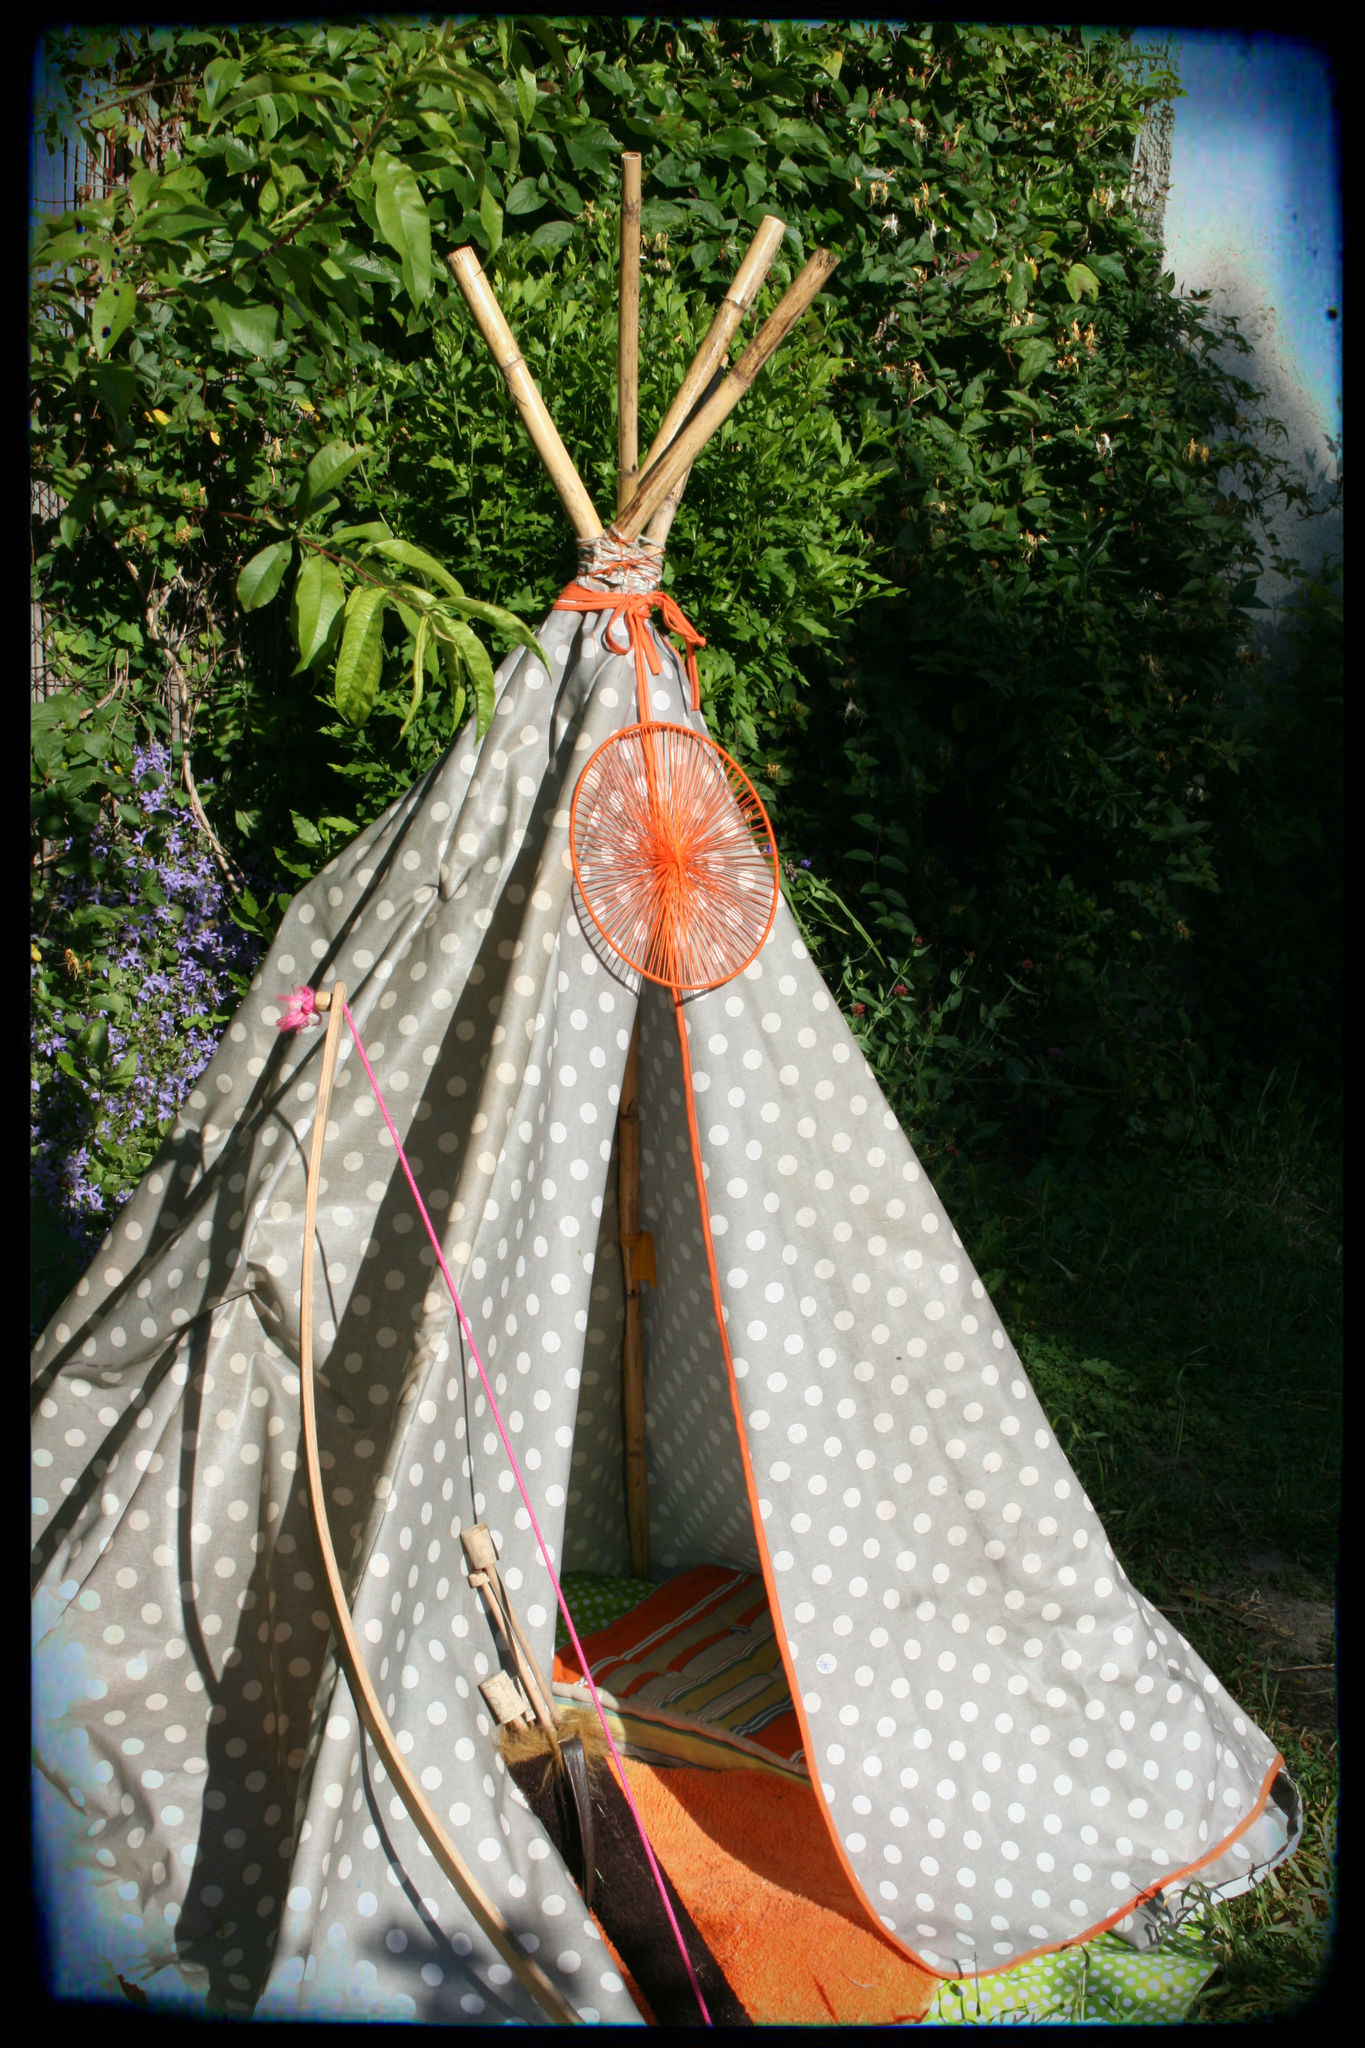 le tipi de titi le petit indien un indien dans mon jardin mathilde marie made. Black Bedroom Furniture Sets. Home Design Ideas